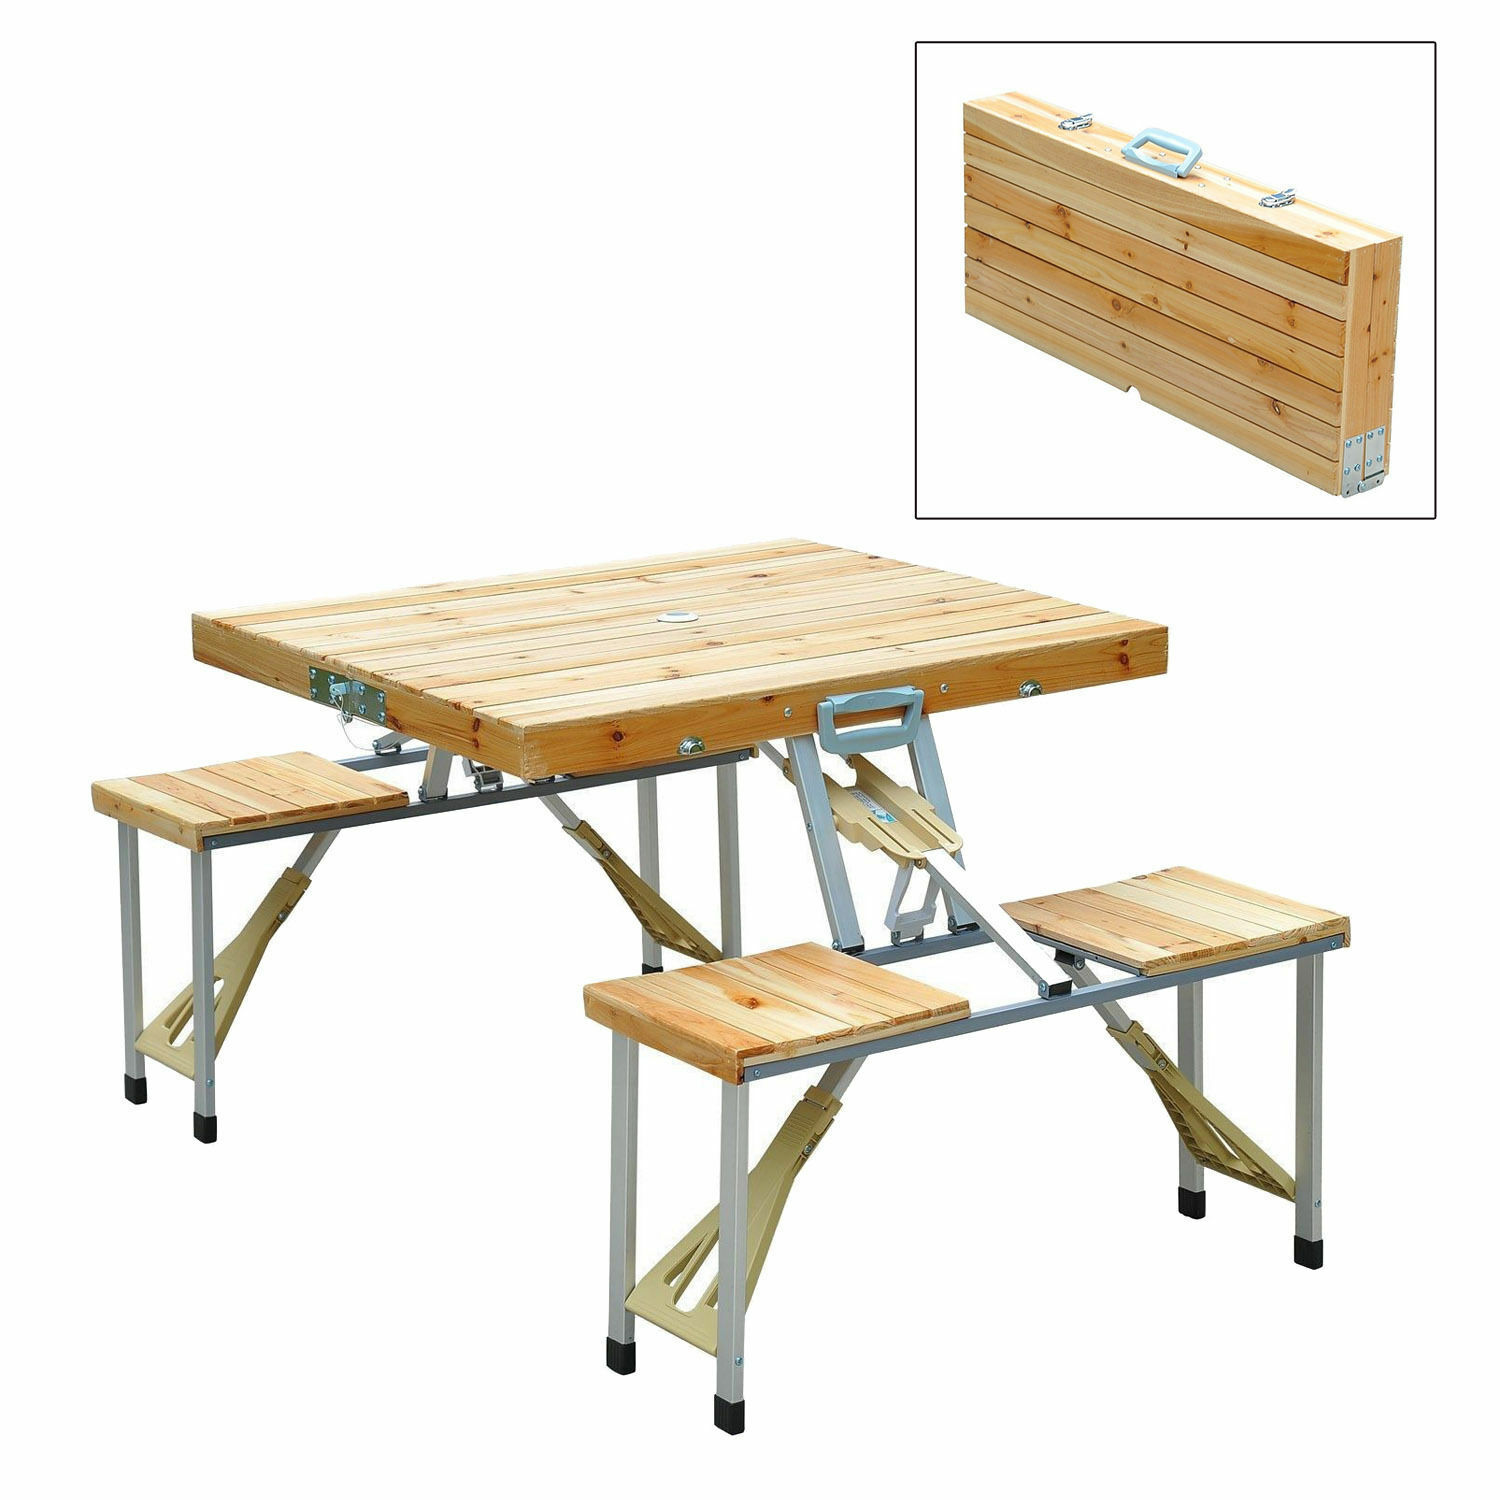 - ALUMINUM PICNIC TABLE FOLDING TABLE RV CAMPER MOTORHOME 4 SEAT